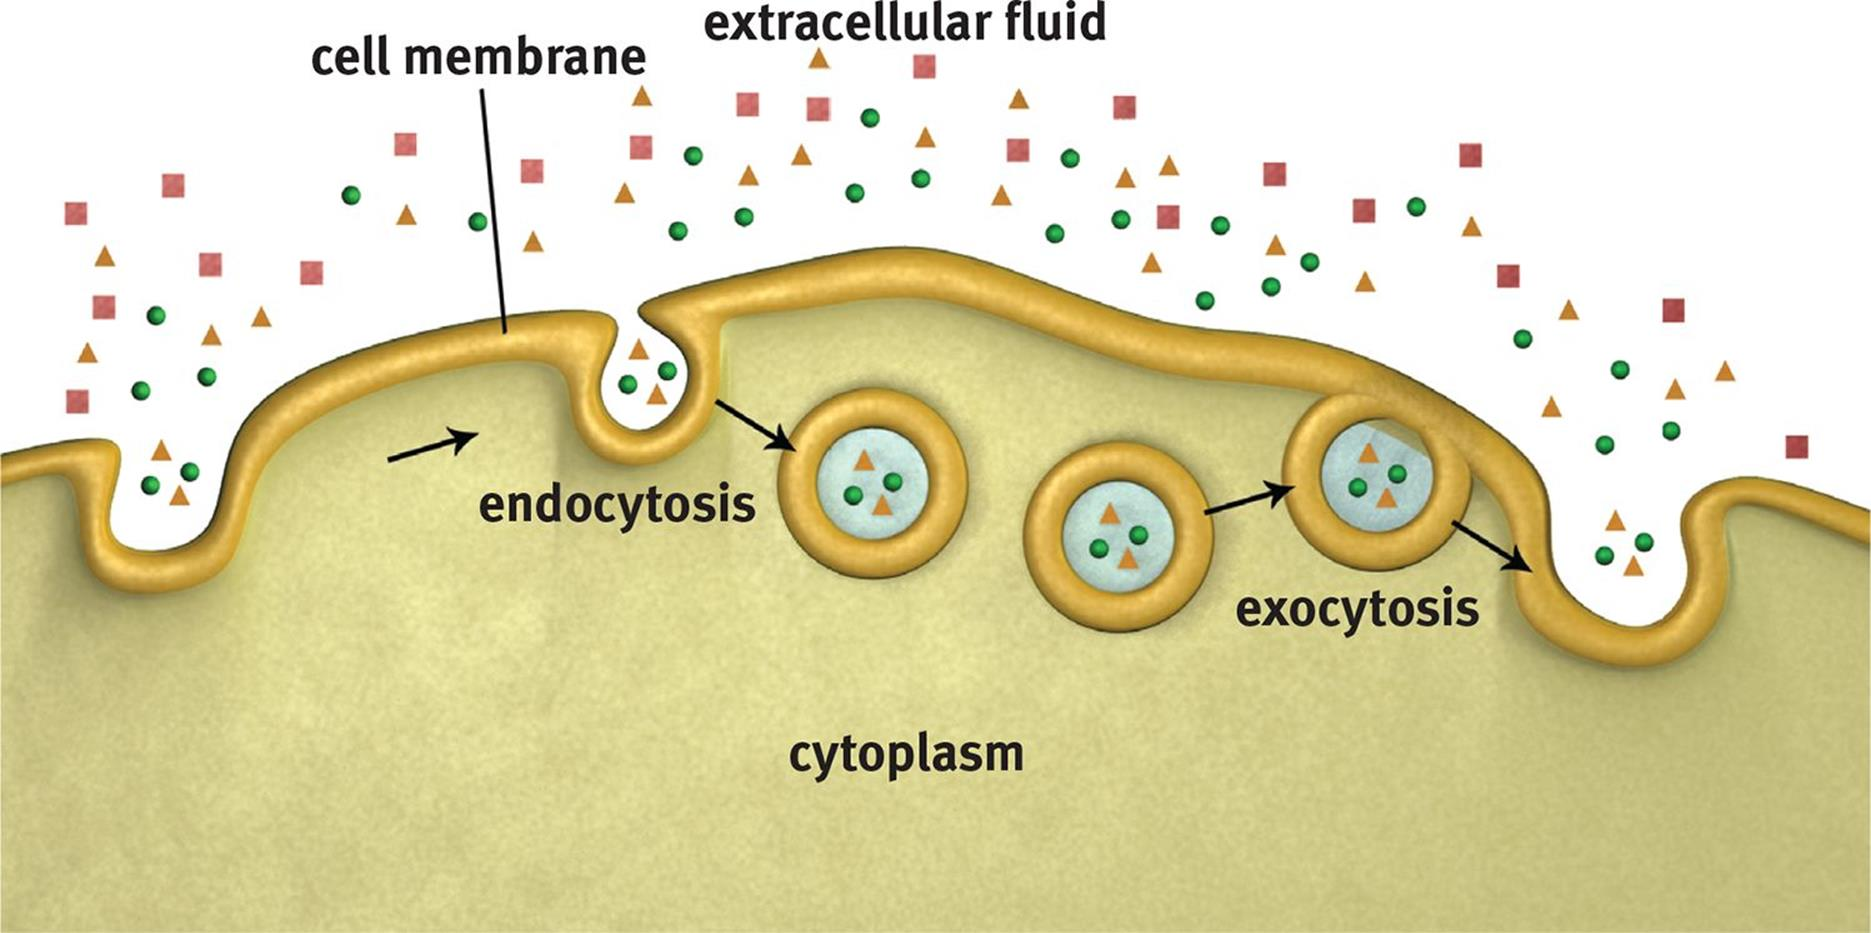 what is the relationship between endocytosis and exocytosis